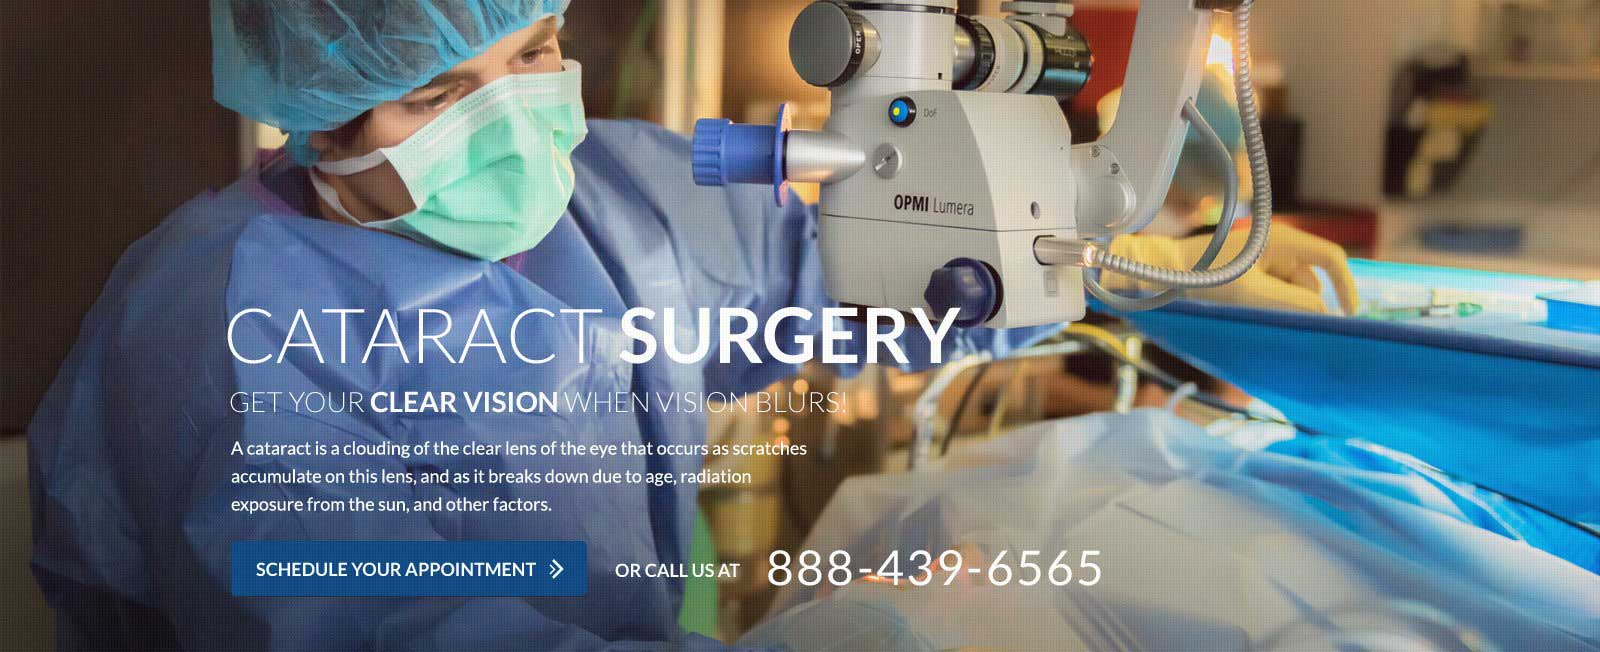 Orange County Cataract surgery in progress